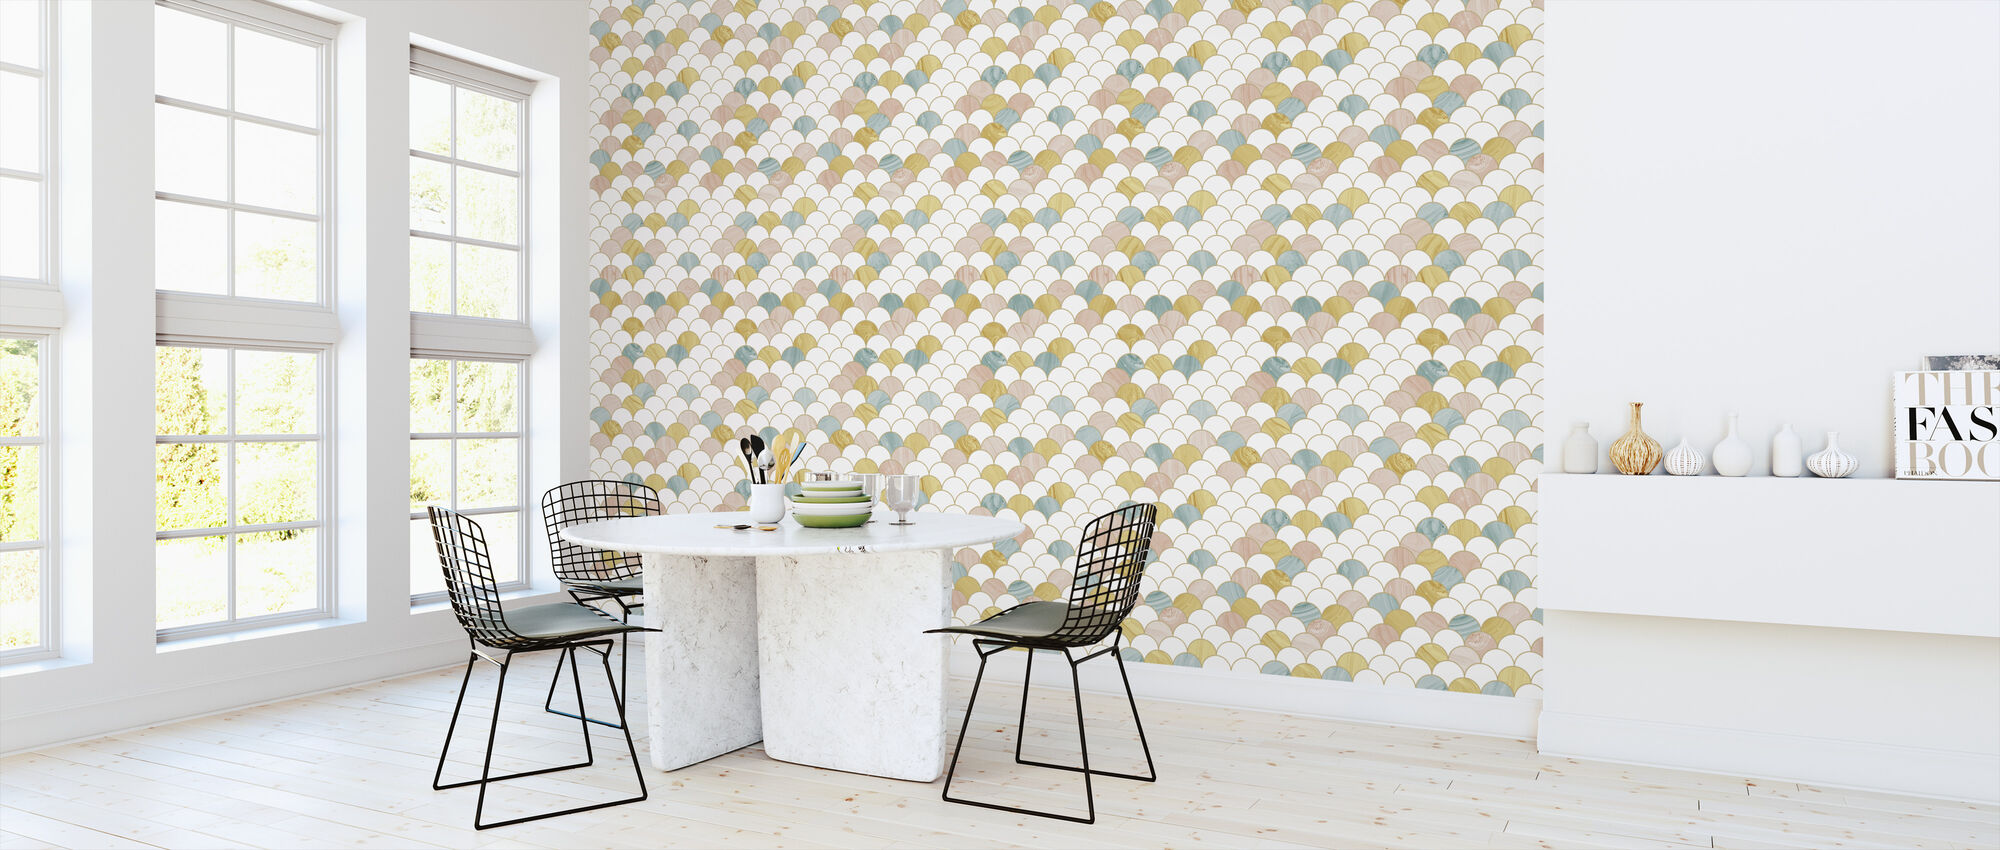 Feathers Yellow - Wallpaper - Kitchen